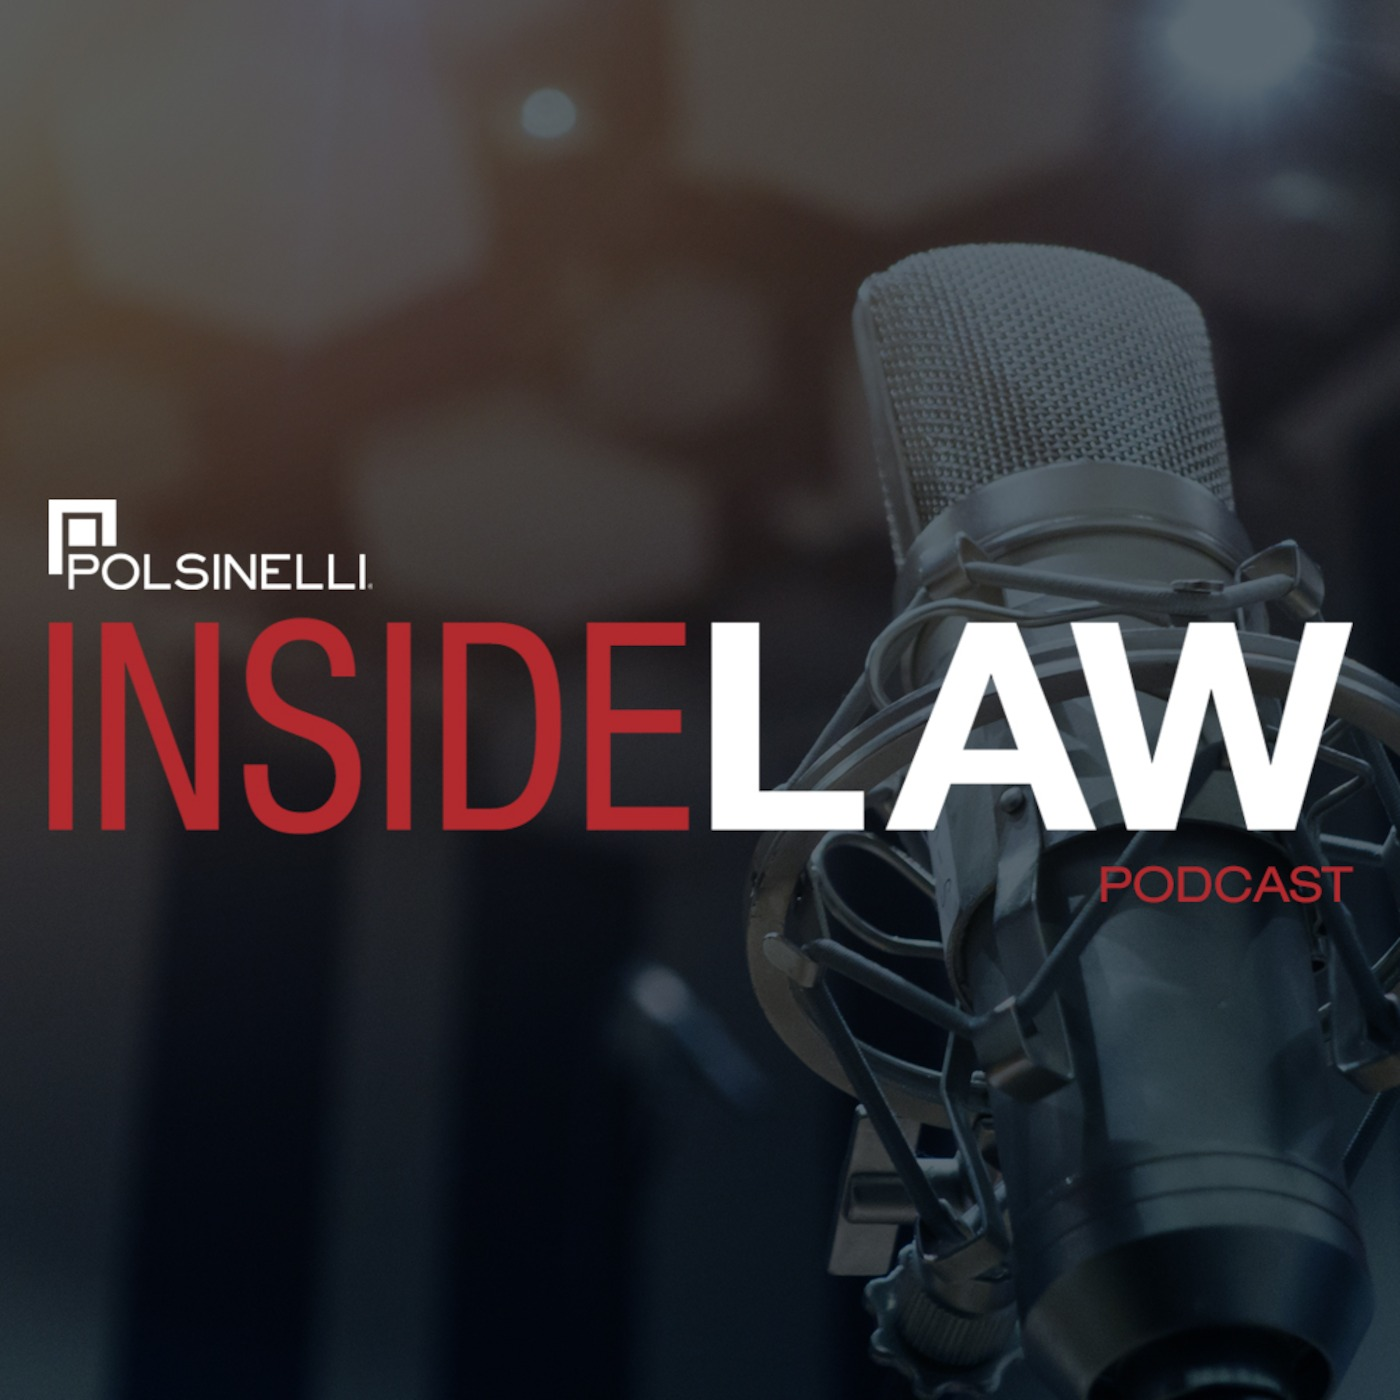 POLSINELLI INSIDE LAW PODCASTS